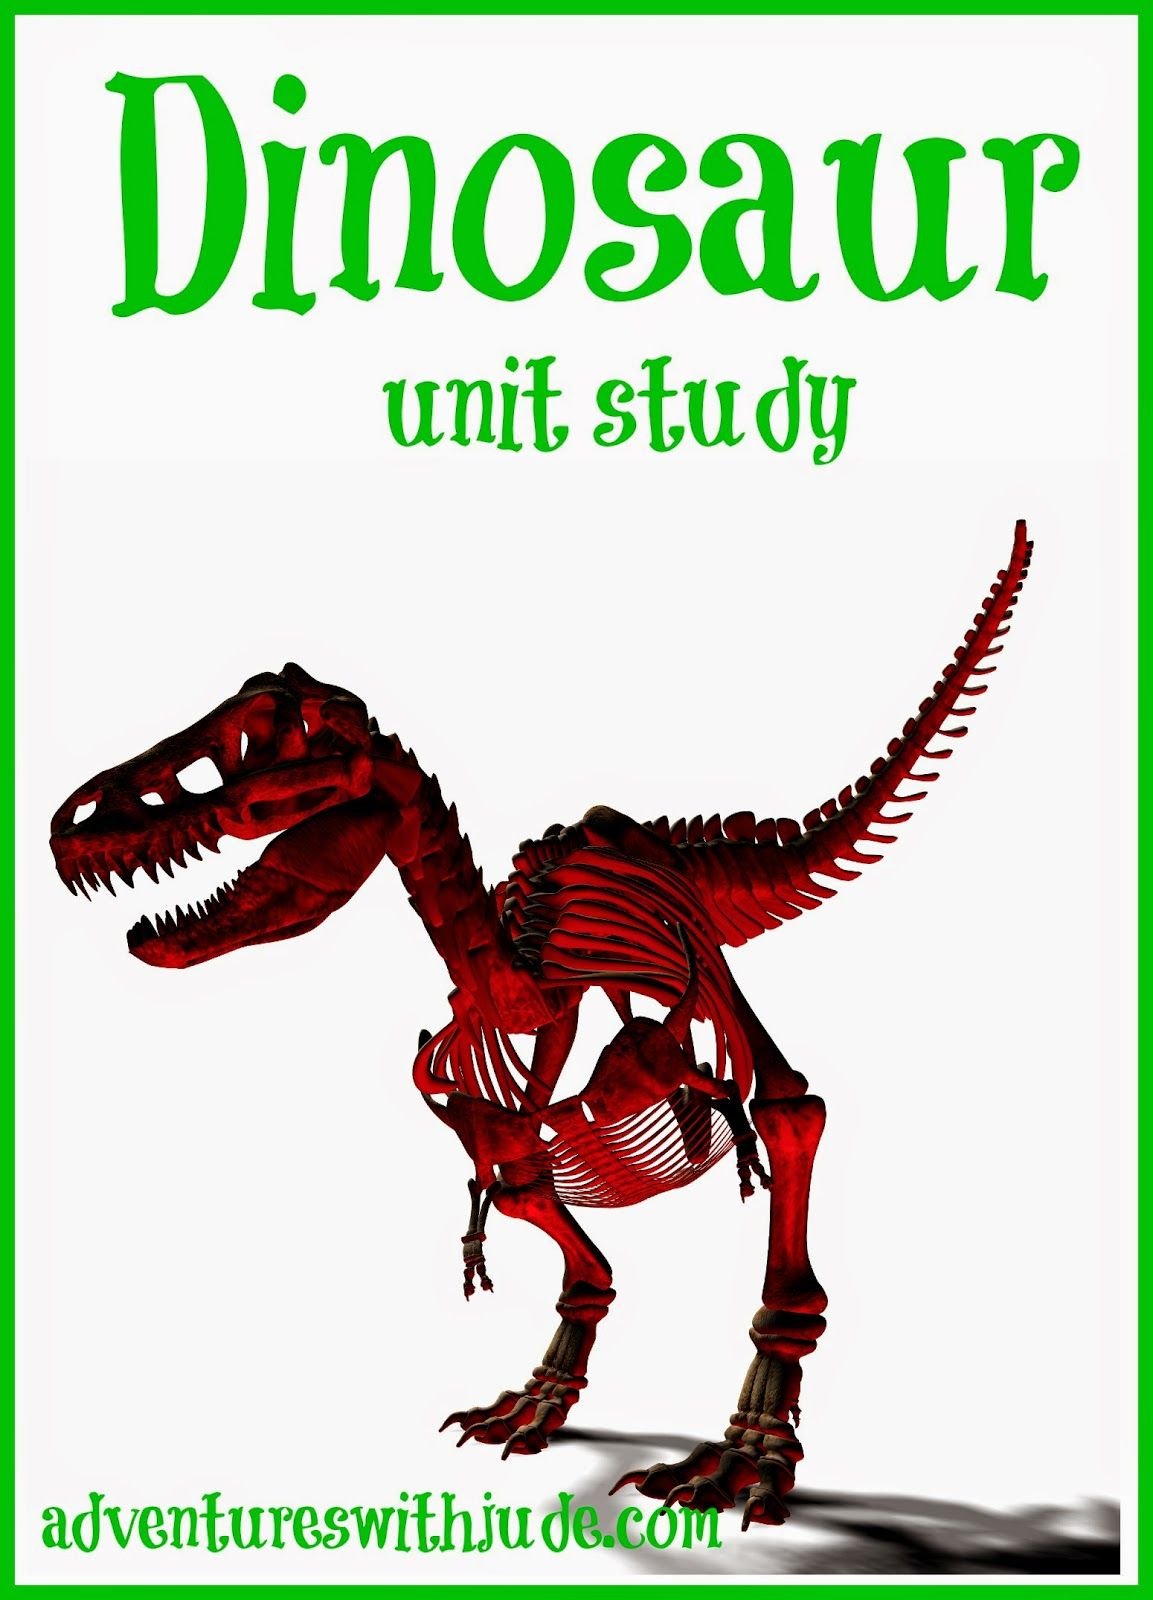 Our Dinosaur Unit Study Homeschool Unitstudy